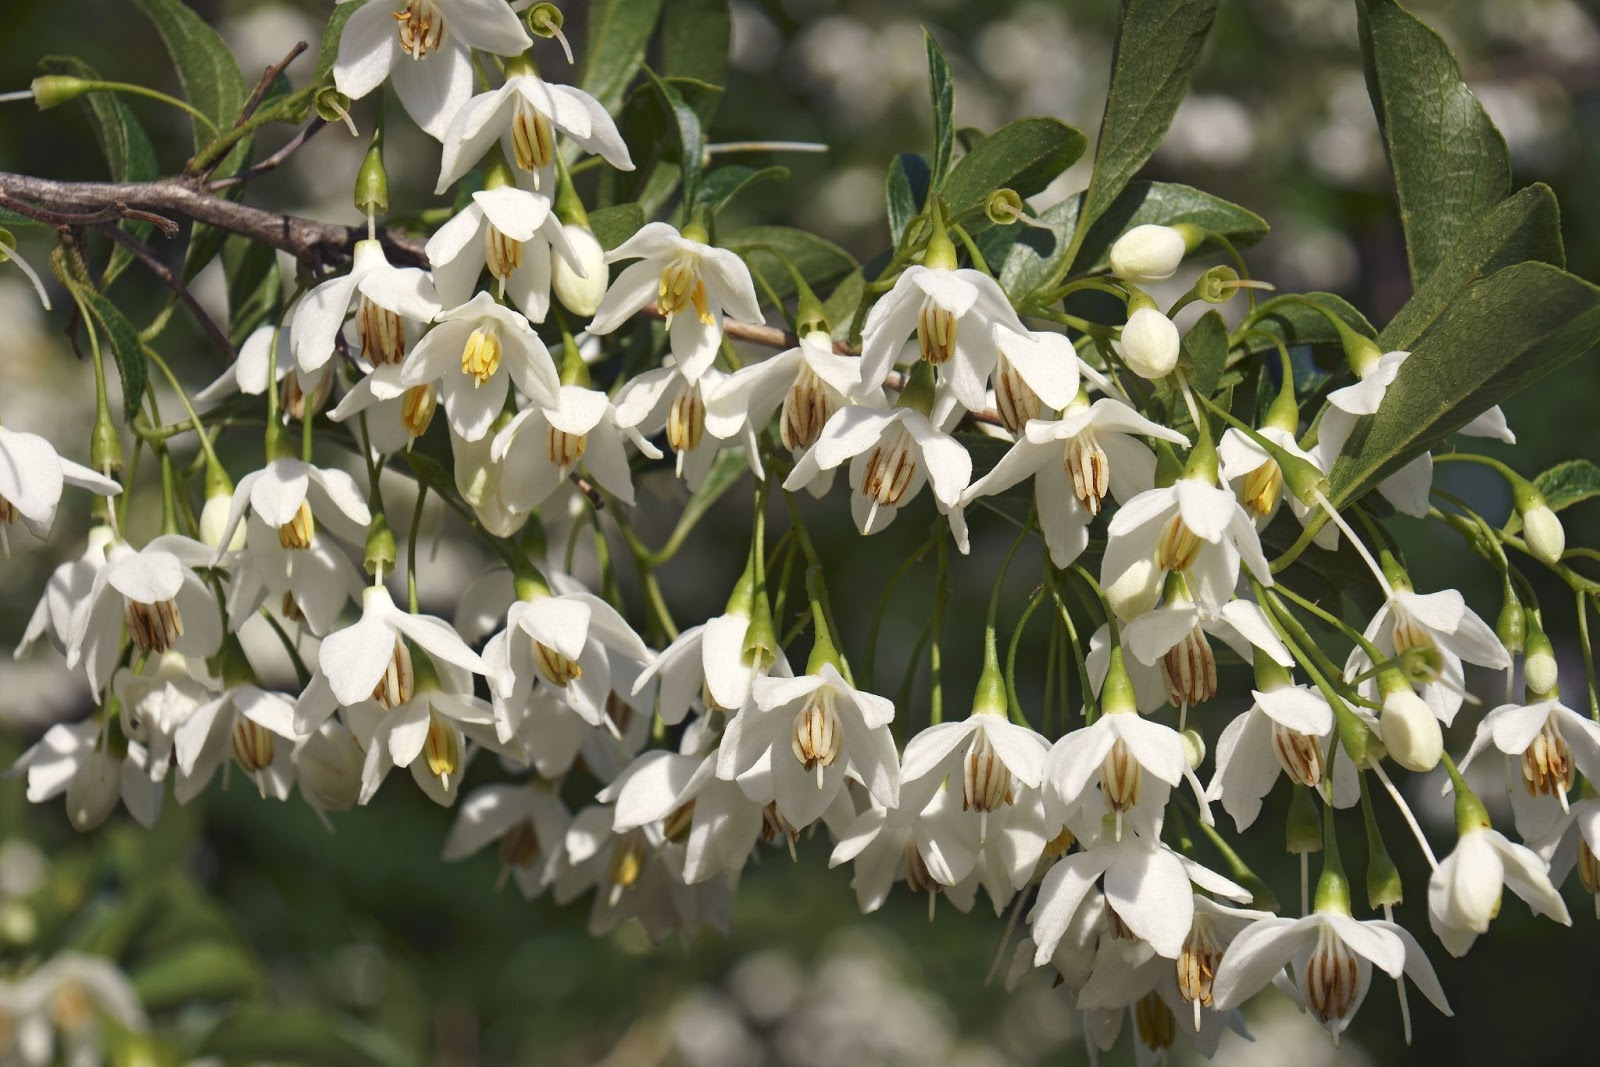 Close up of delicate white flowers of the Japanese snowbell tree, contrasting beautifully with their shiny green leaves.